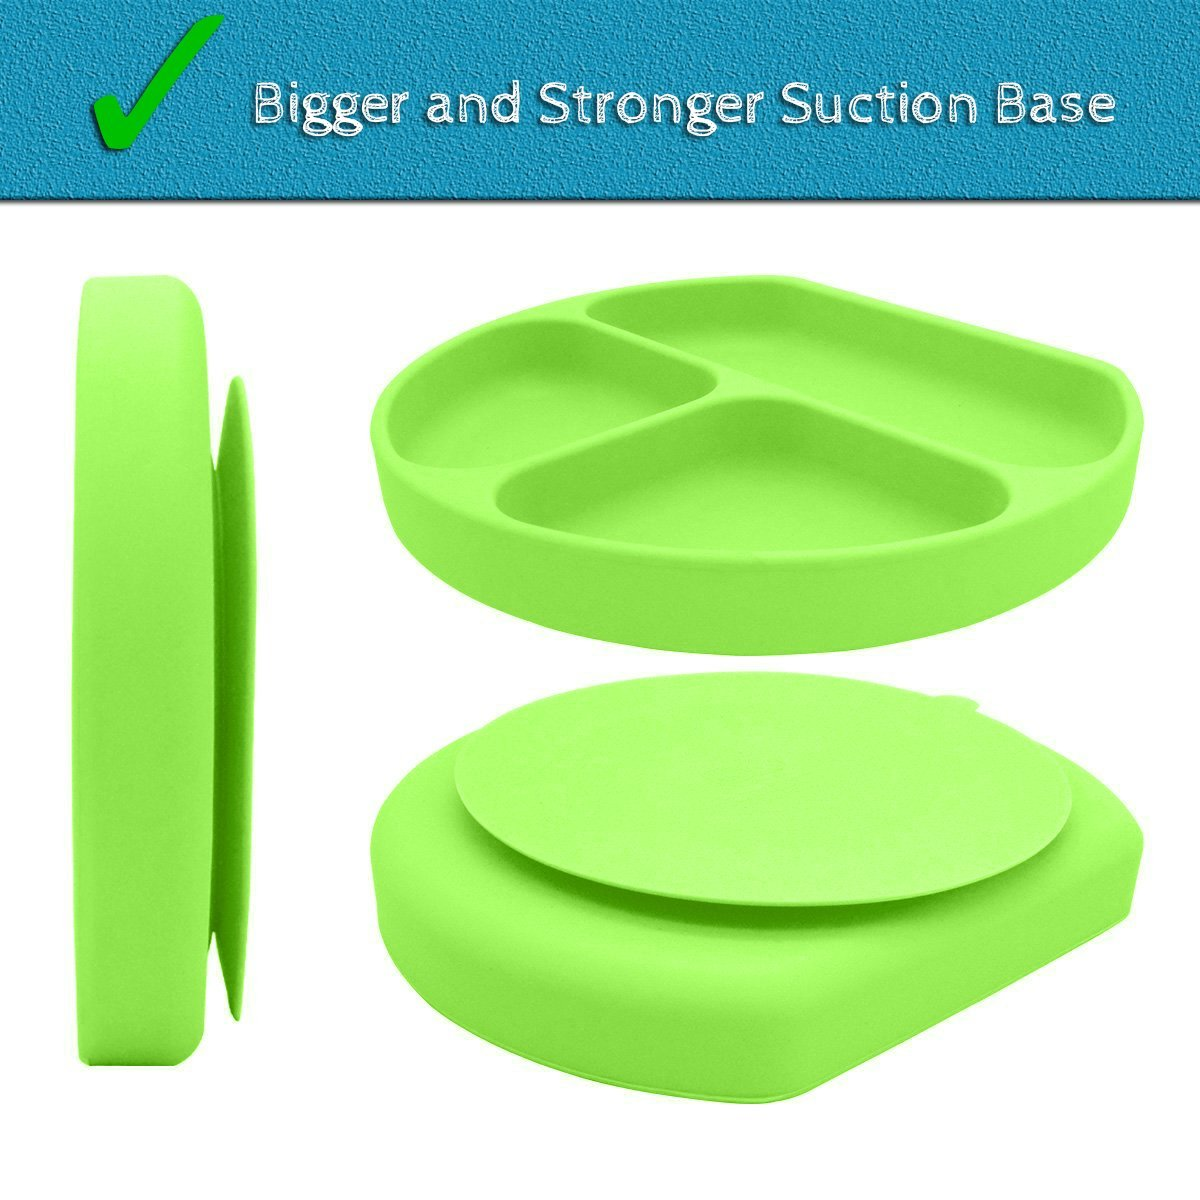 SiliKong Silicone Suction Plate for Toddlers, Fits Most Highchair Trays, BPA Free, Divided Baby Feeding Bowls Dishes for Kids (Green) by SiliKong (Image #2)